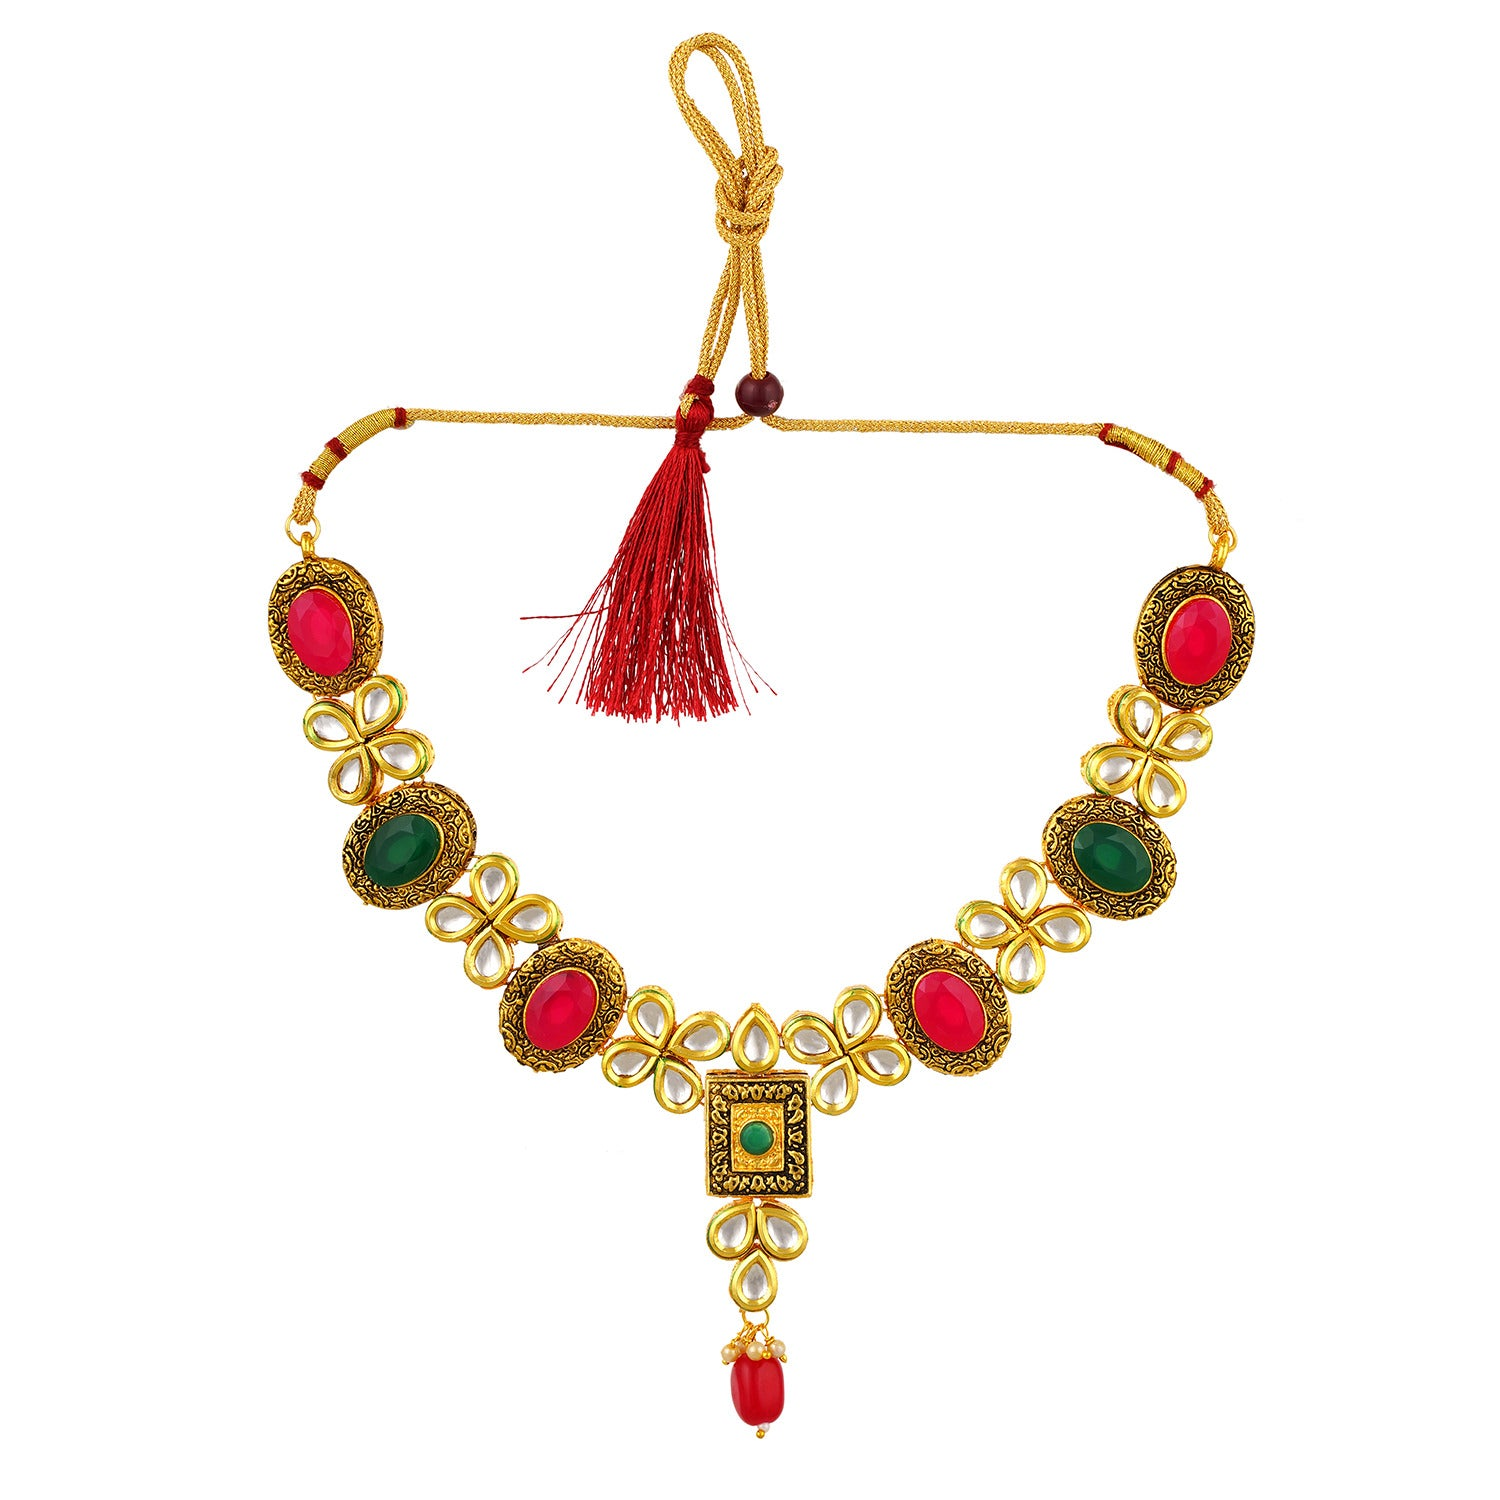 Gold Plated Kundan Meenakari Necklace Earrings Jewelry Set for Girls and Women